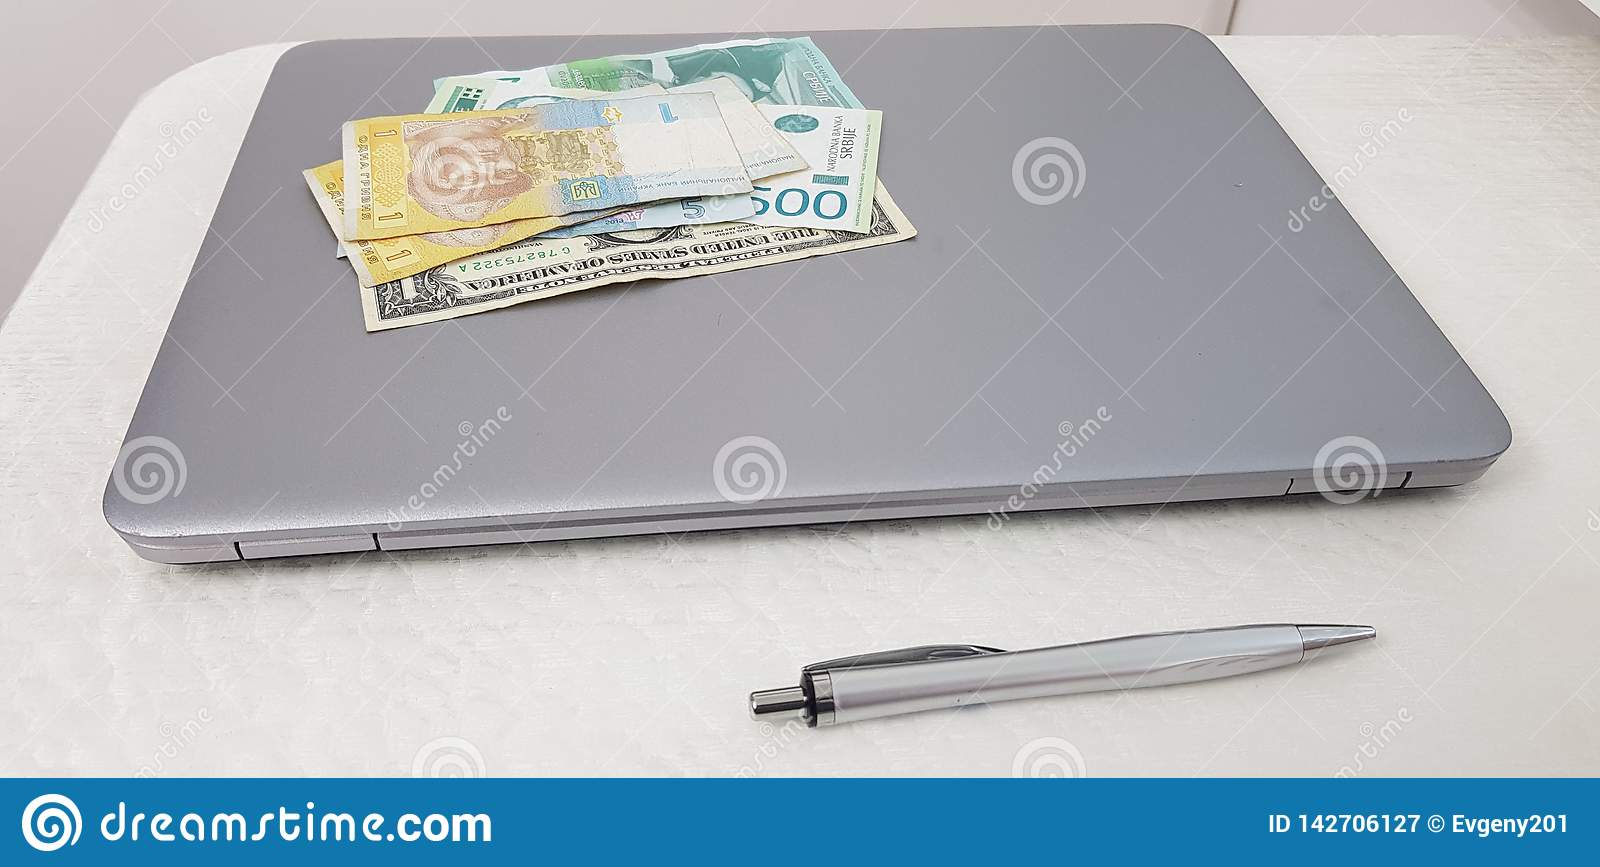 Banknotes of hryvnia dynars and dollars lay on top of laptop computer